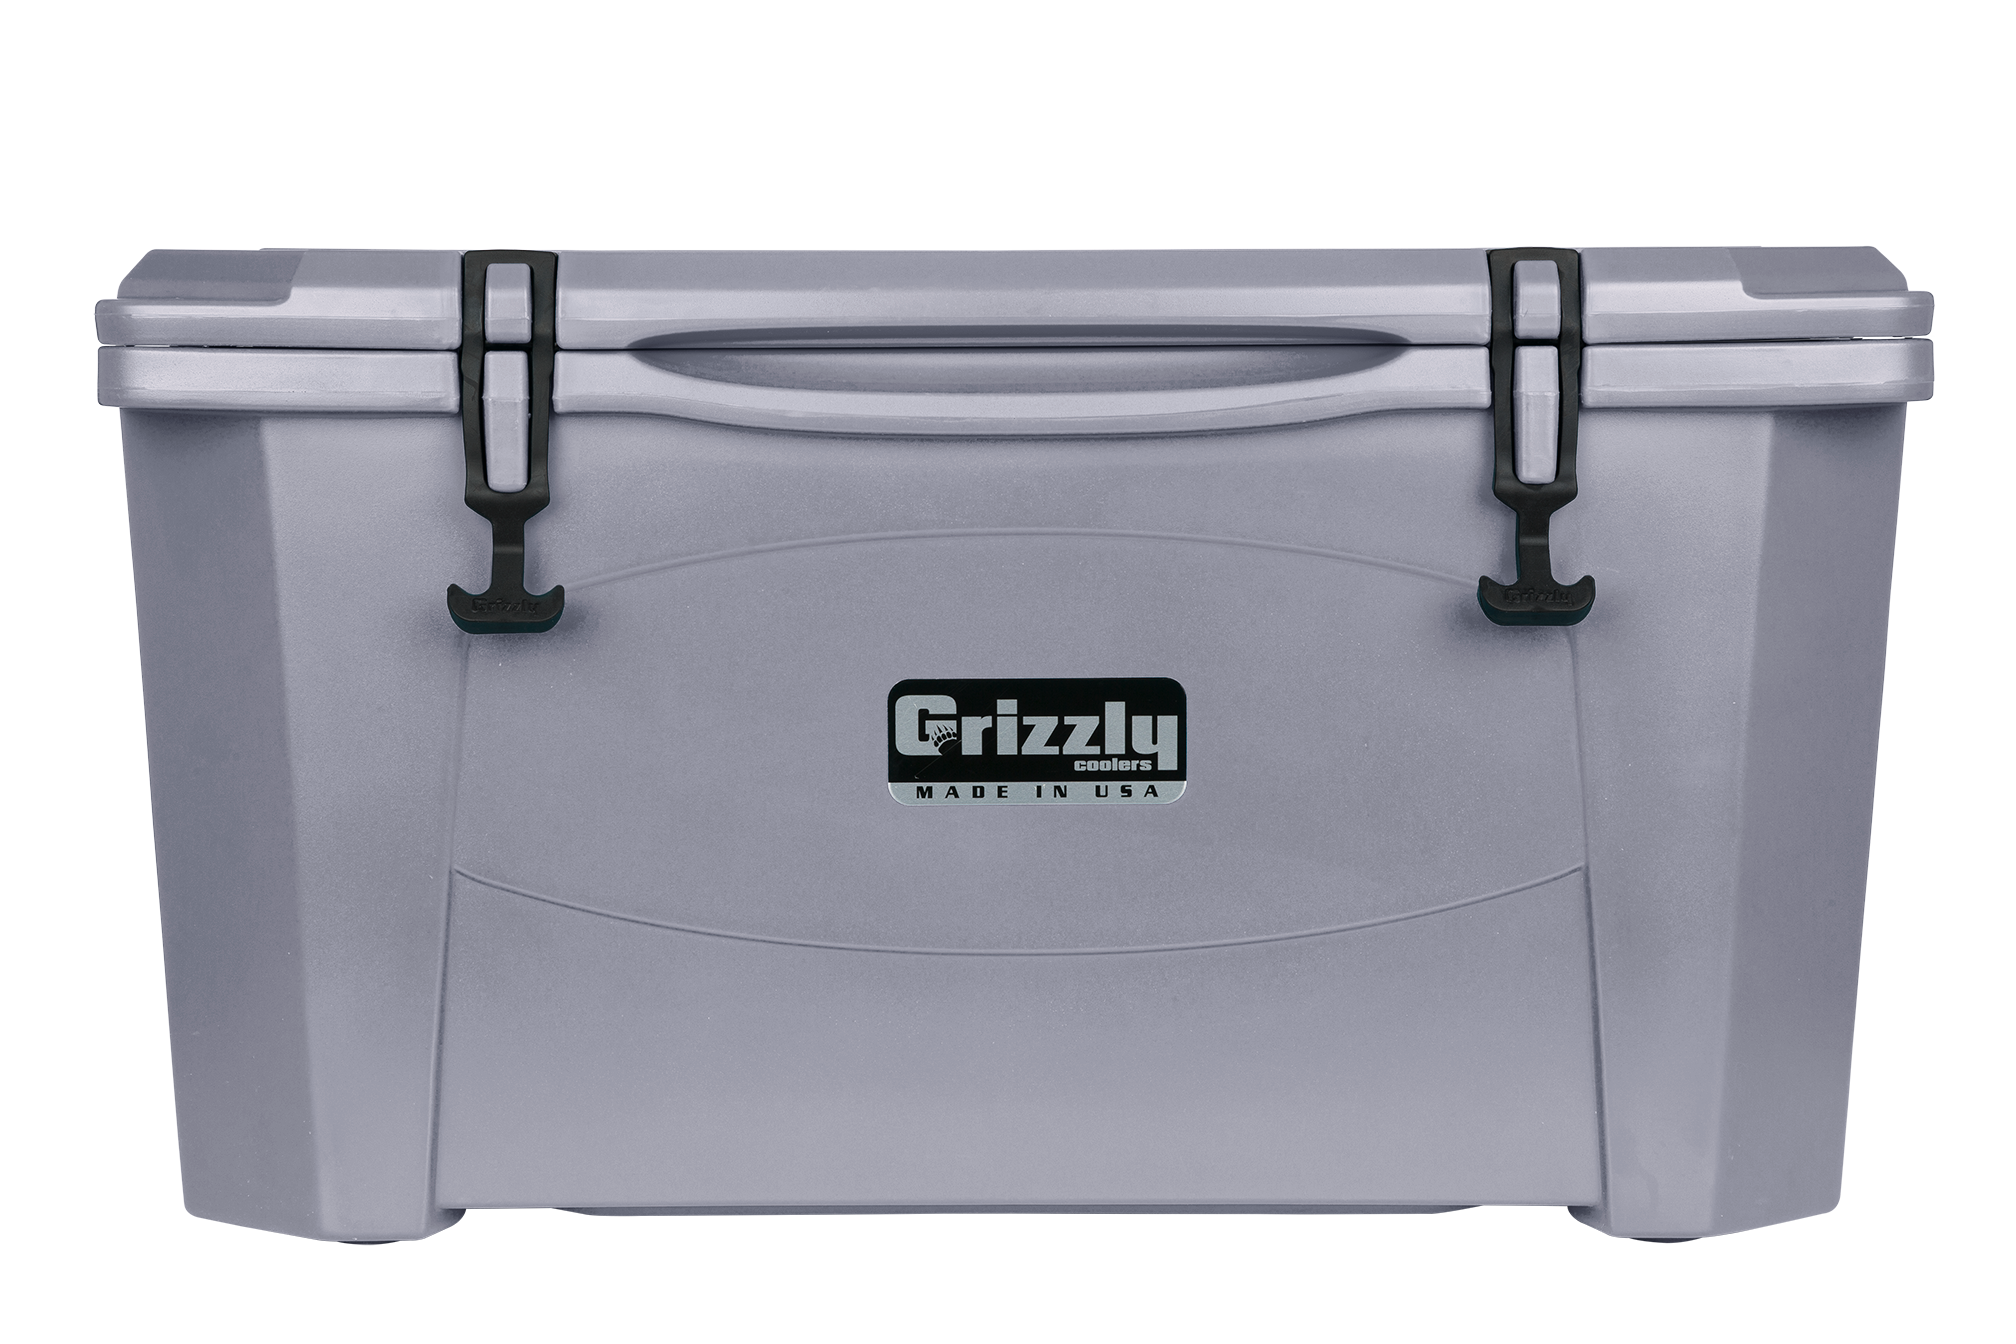 Grizzly 60 Coolers